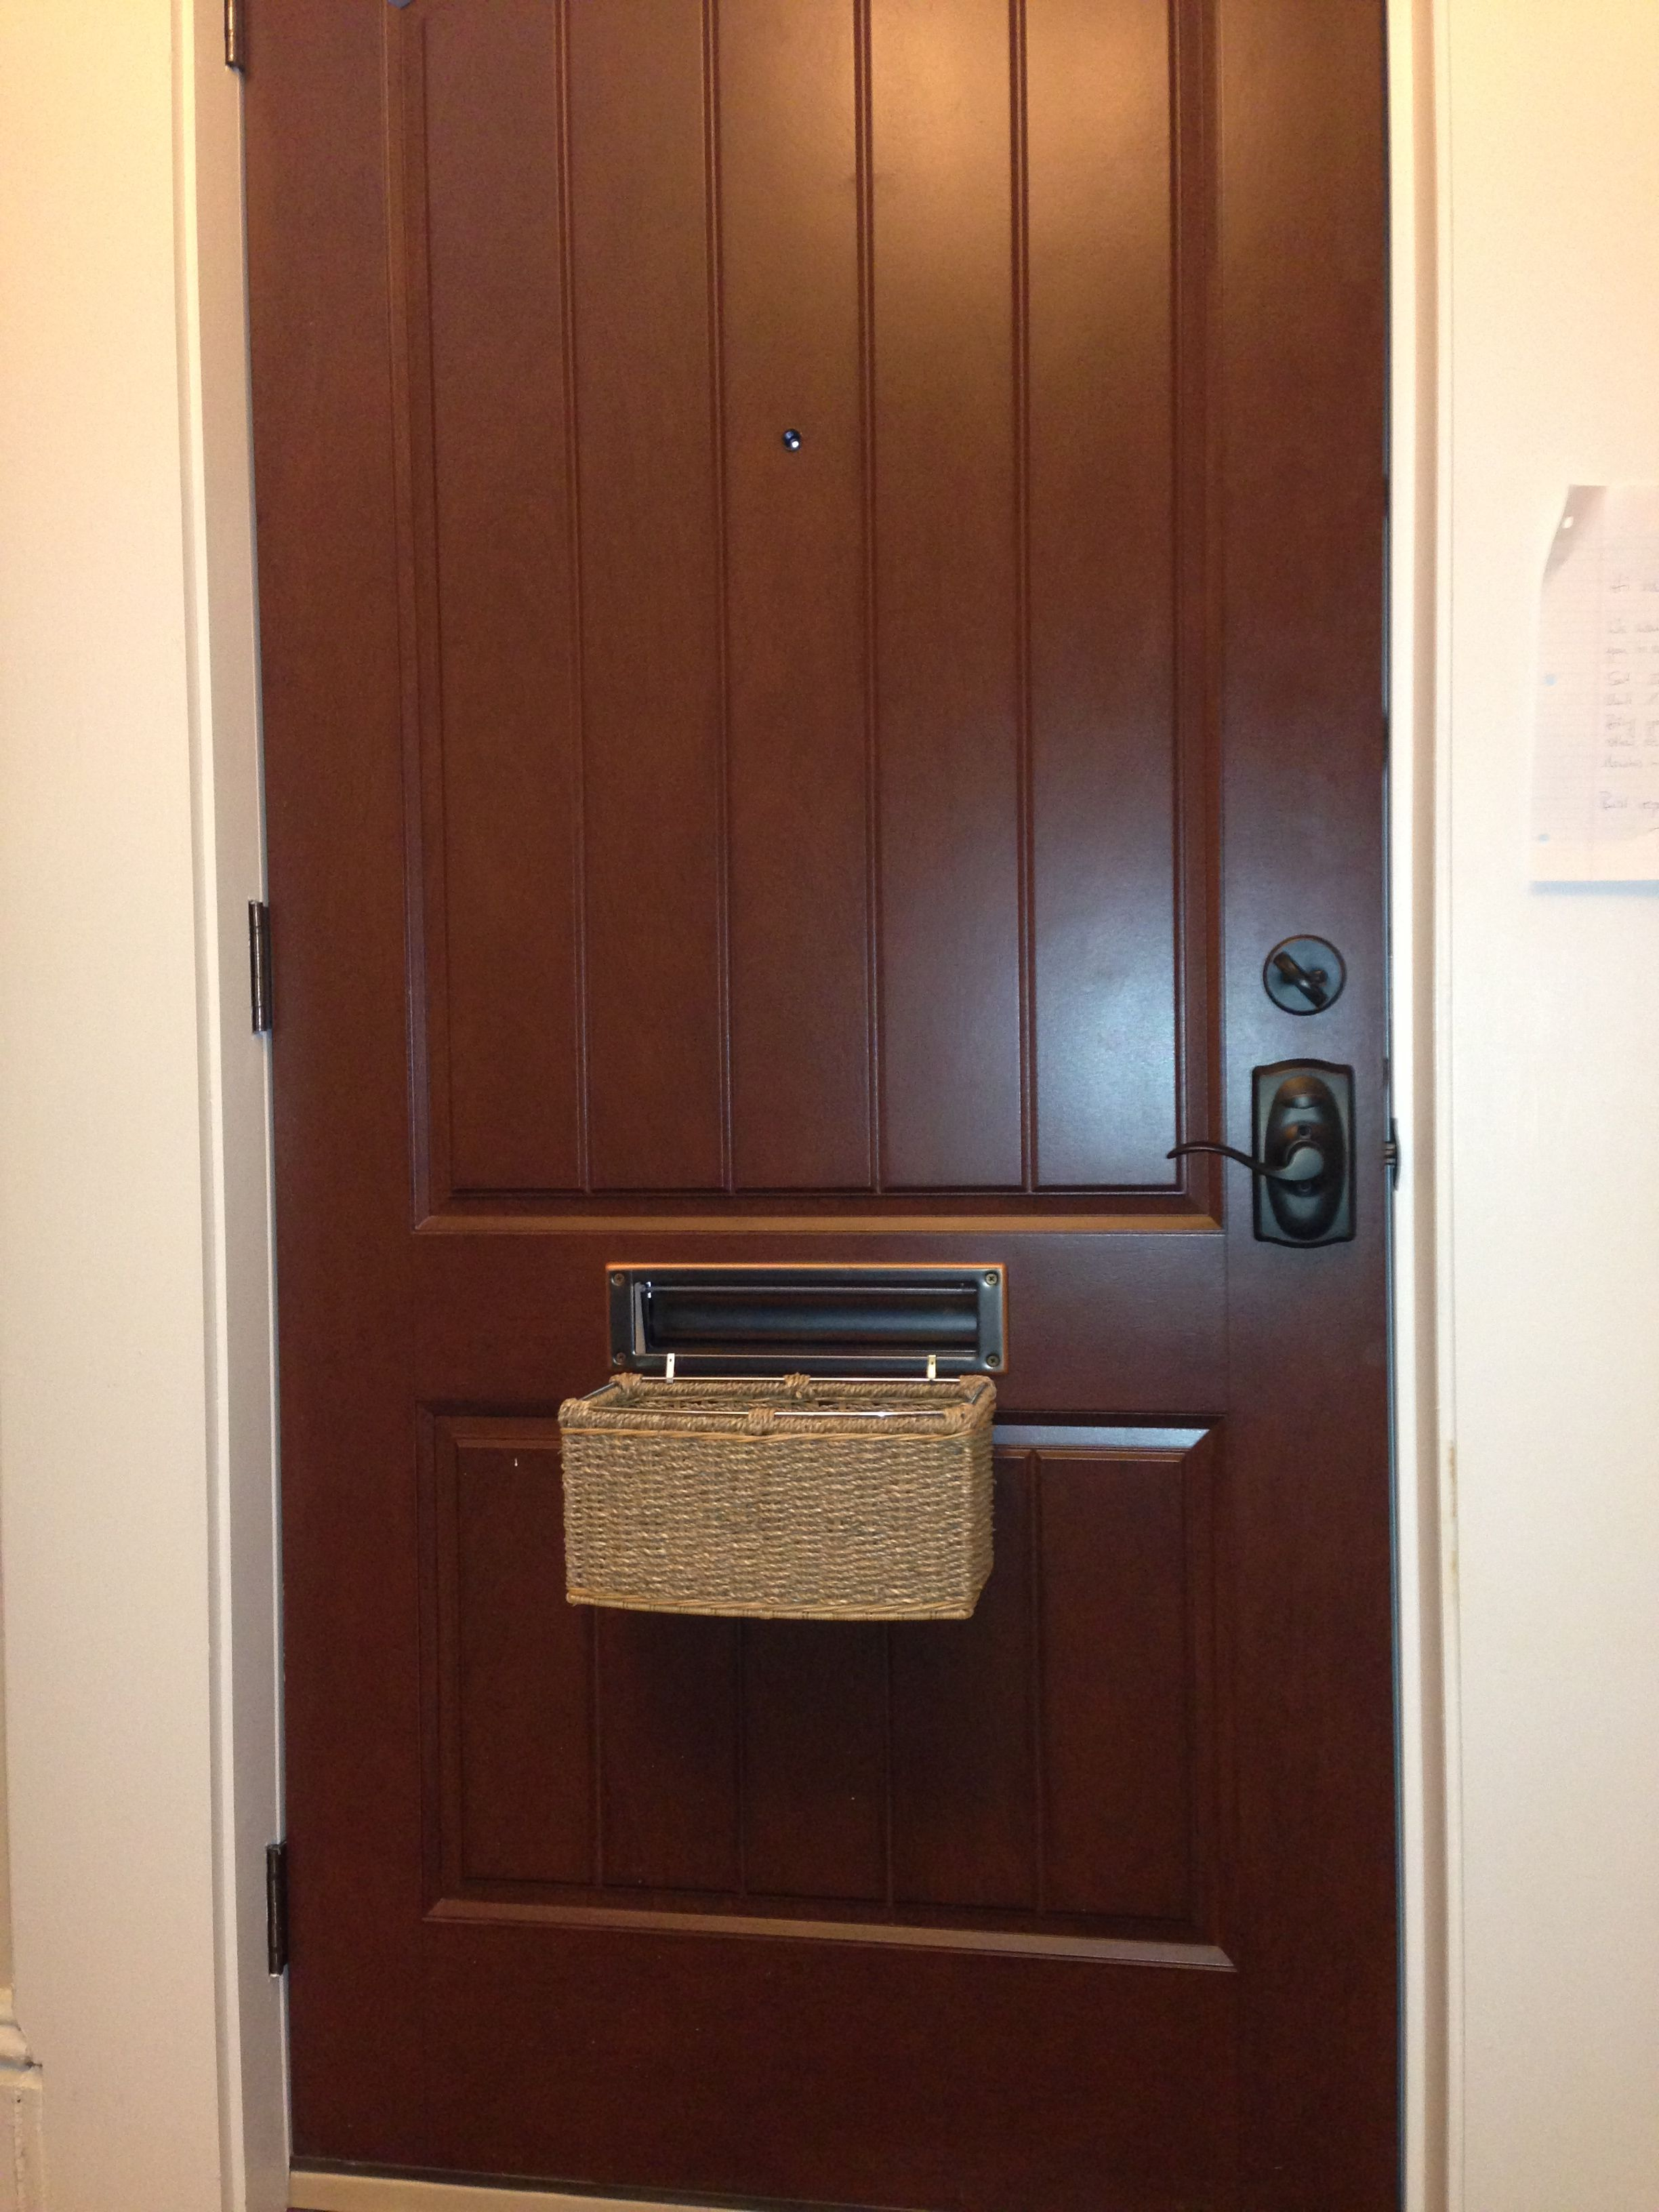 Mail Slot Basket Apartment Decor